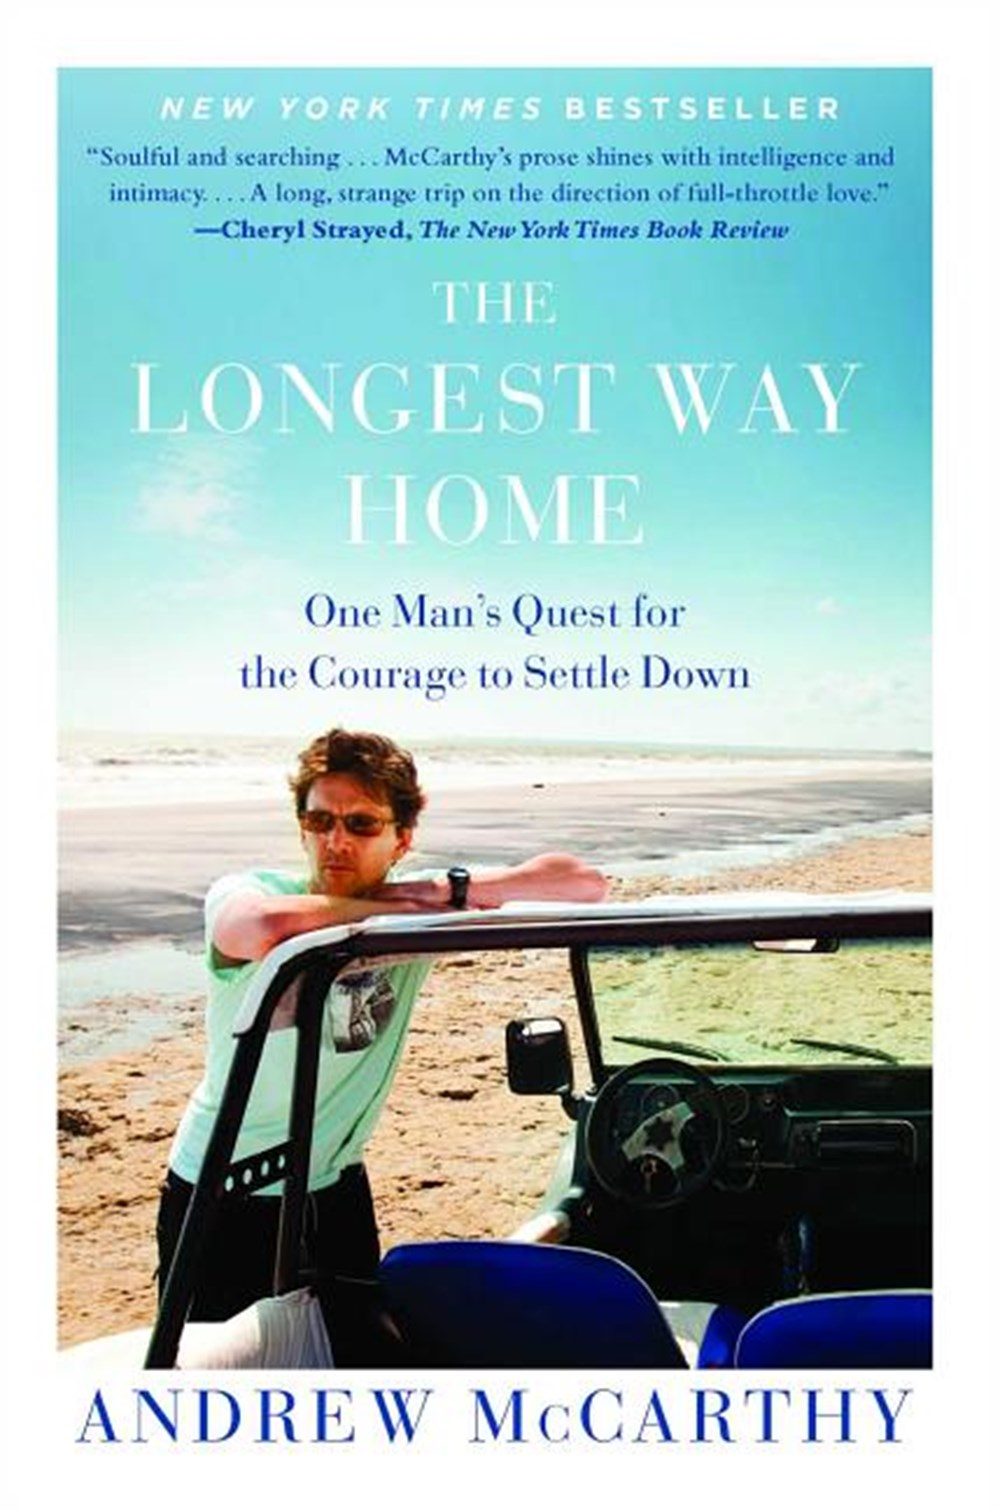 Longest Way Home One Man's Quest for the Courage to Settle Down